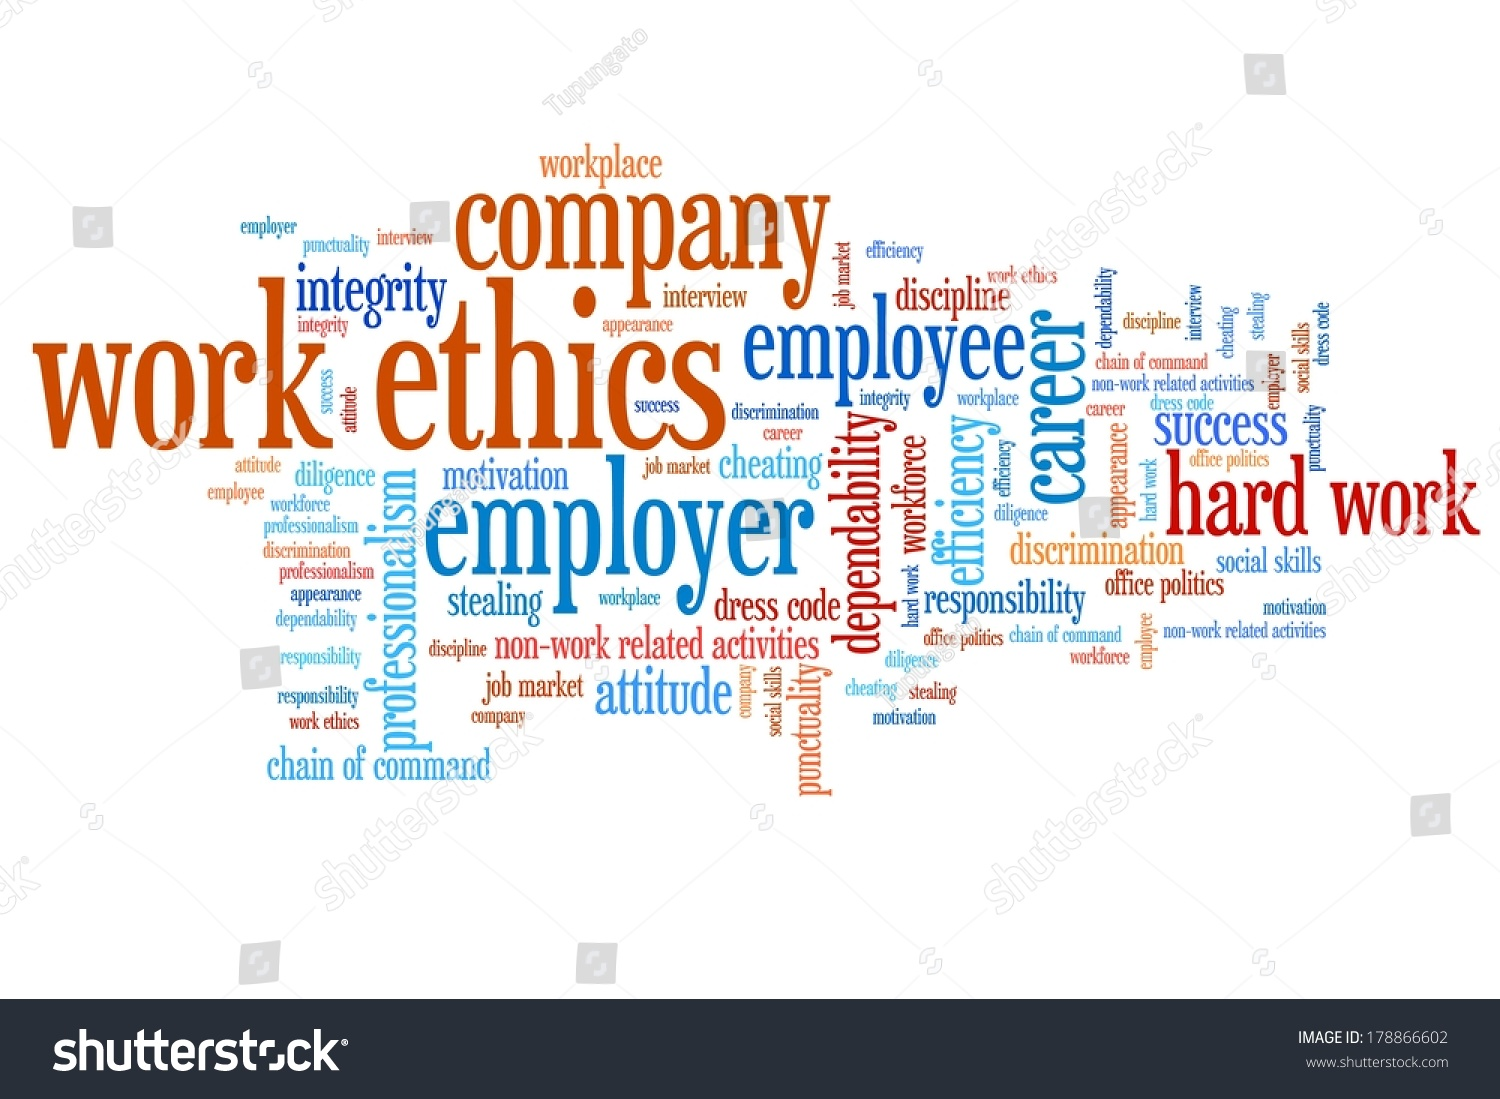 work ethics issues concepts word cloud stock illustration work ethics issues and concepts word cloud illustration word collage concept